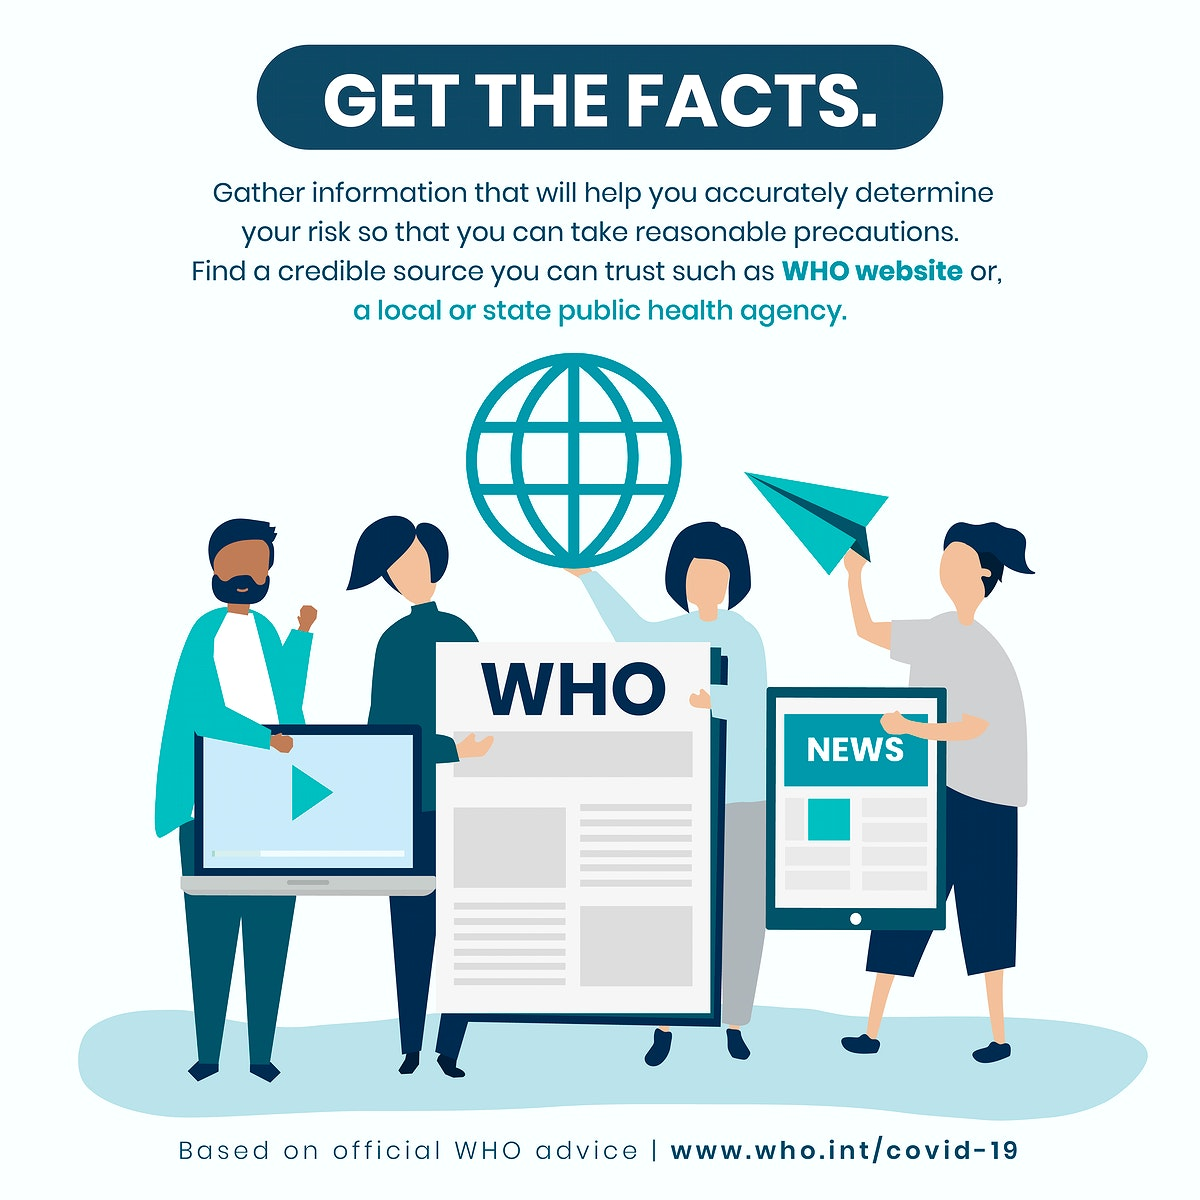 Get the facts during coronavirus social template source WHO